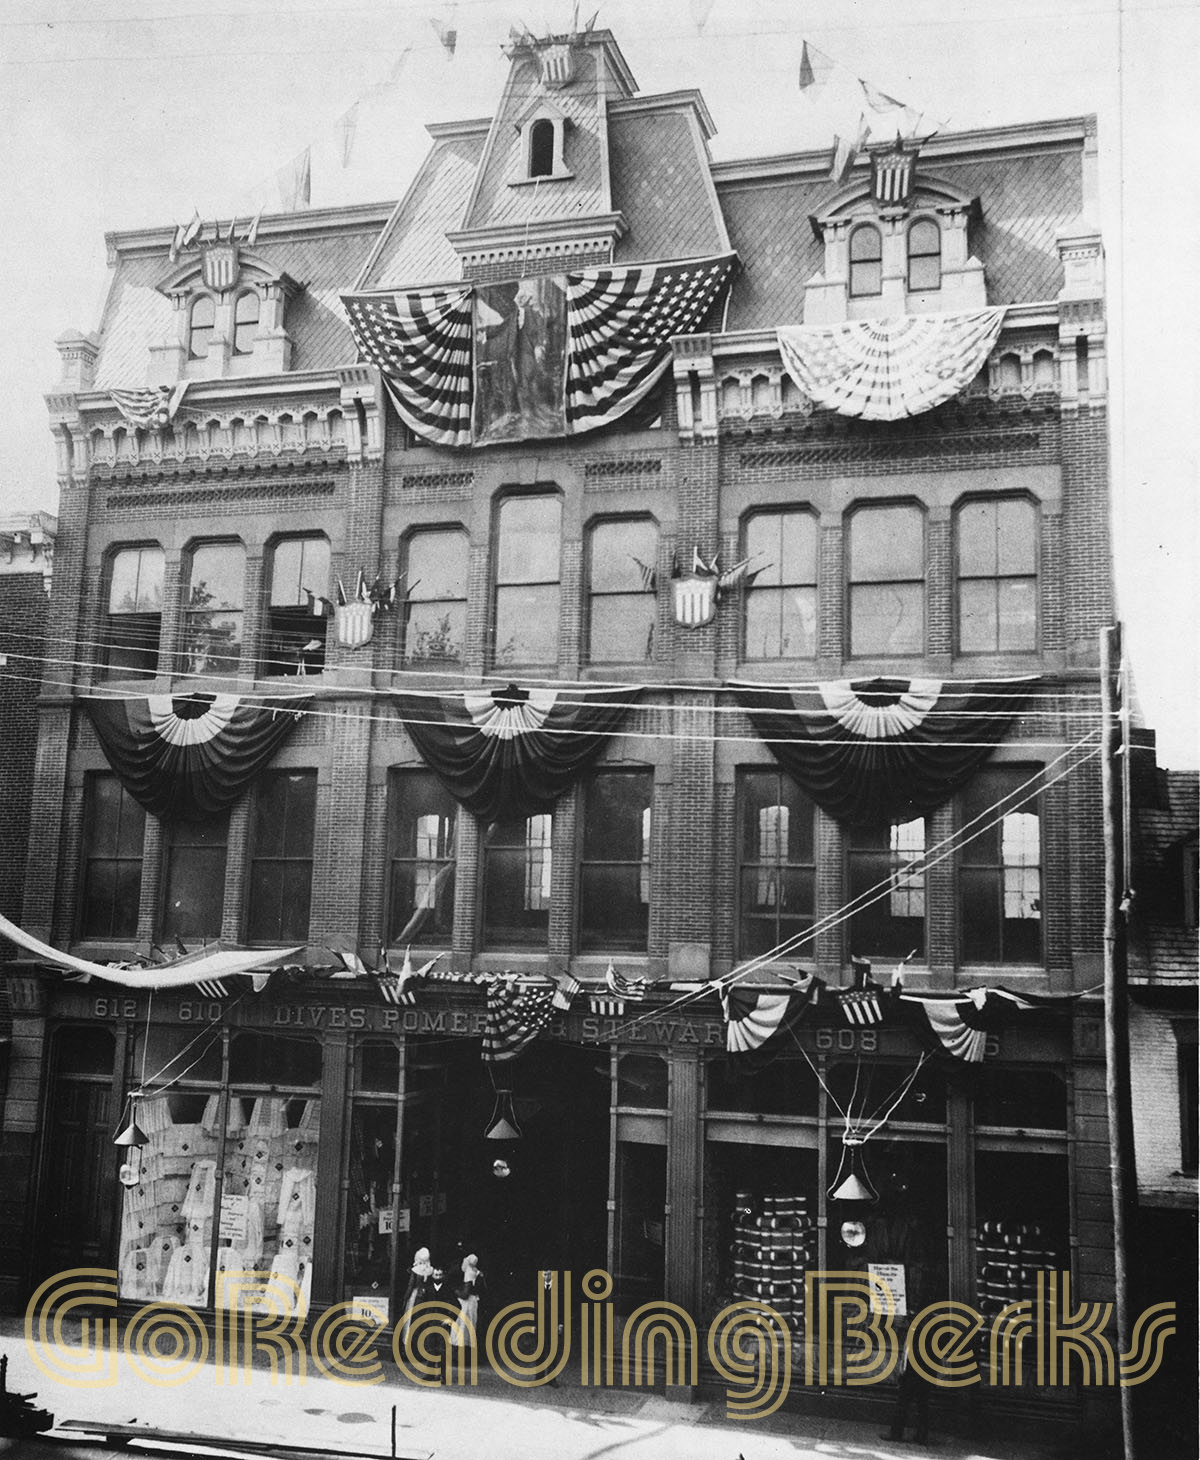 Pomeroy's Department Store, Reading, PA, 1883-1884